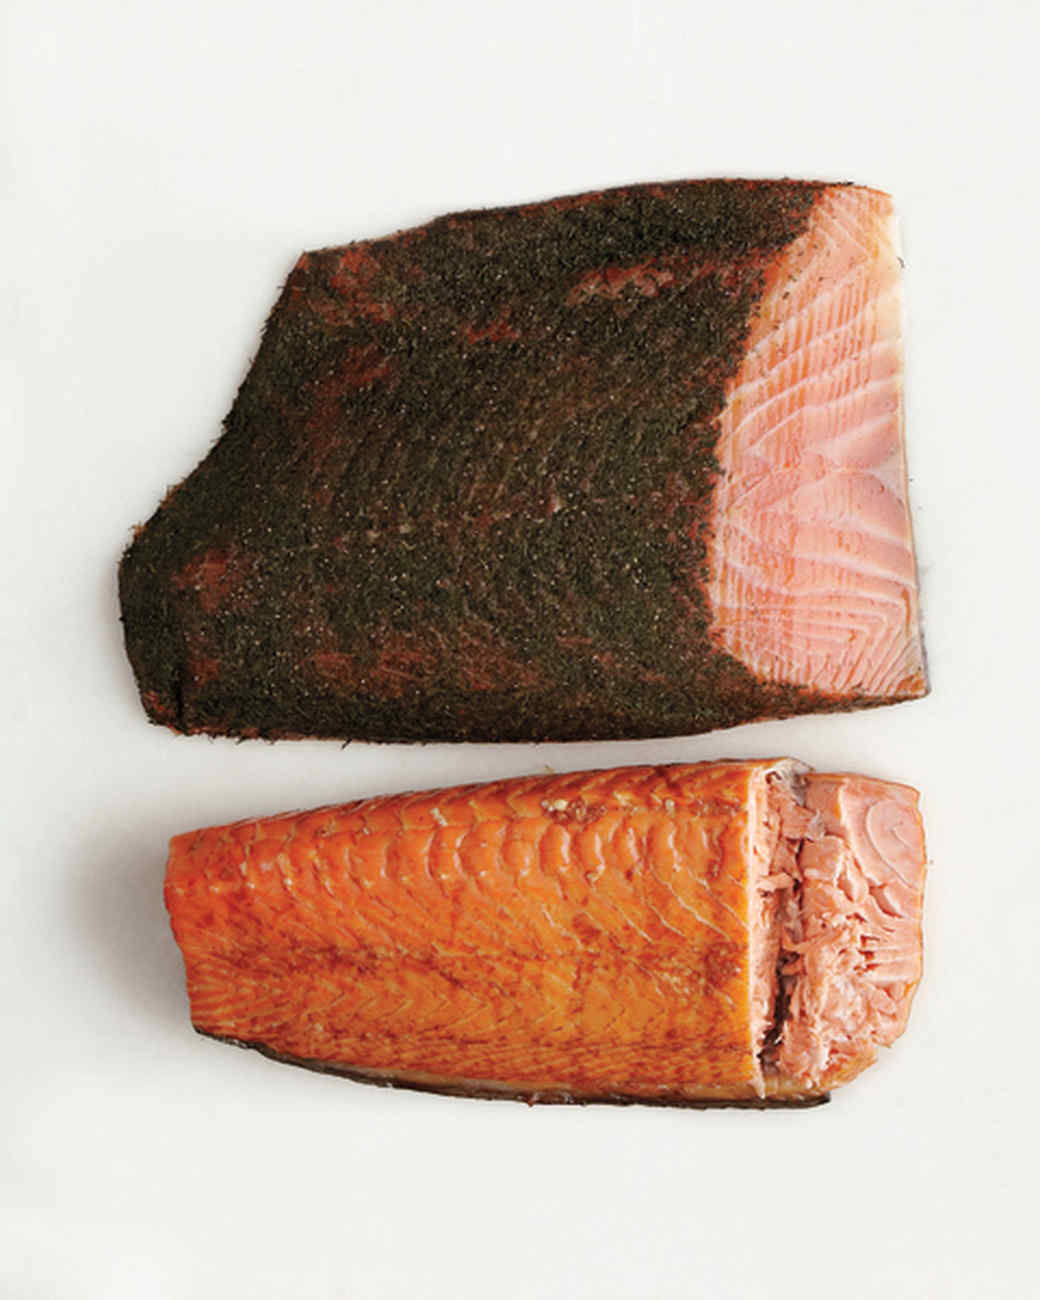 russ-and-daughters-smoked-fish-003-md108873.jpg